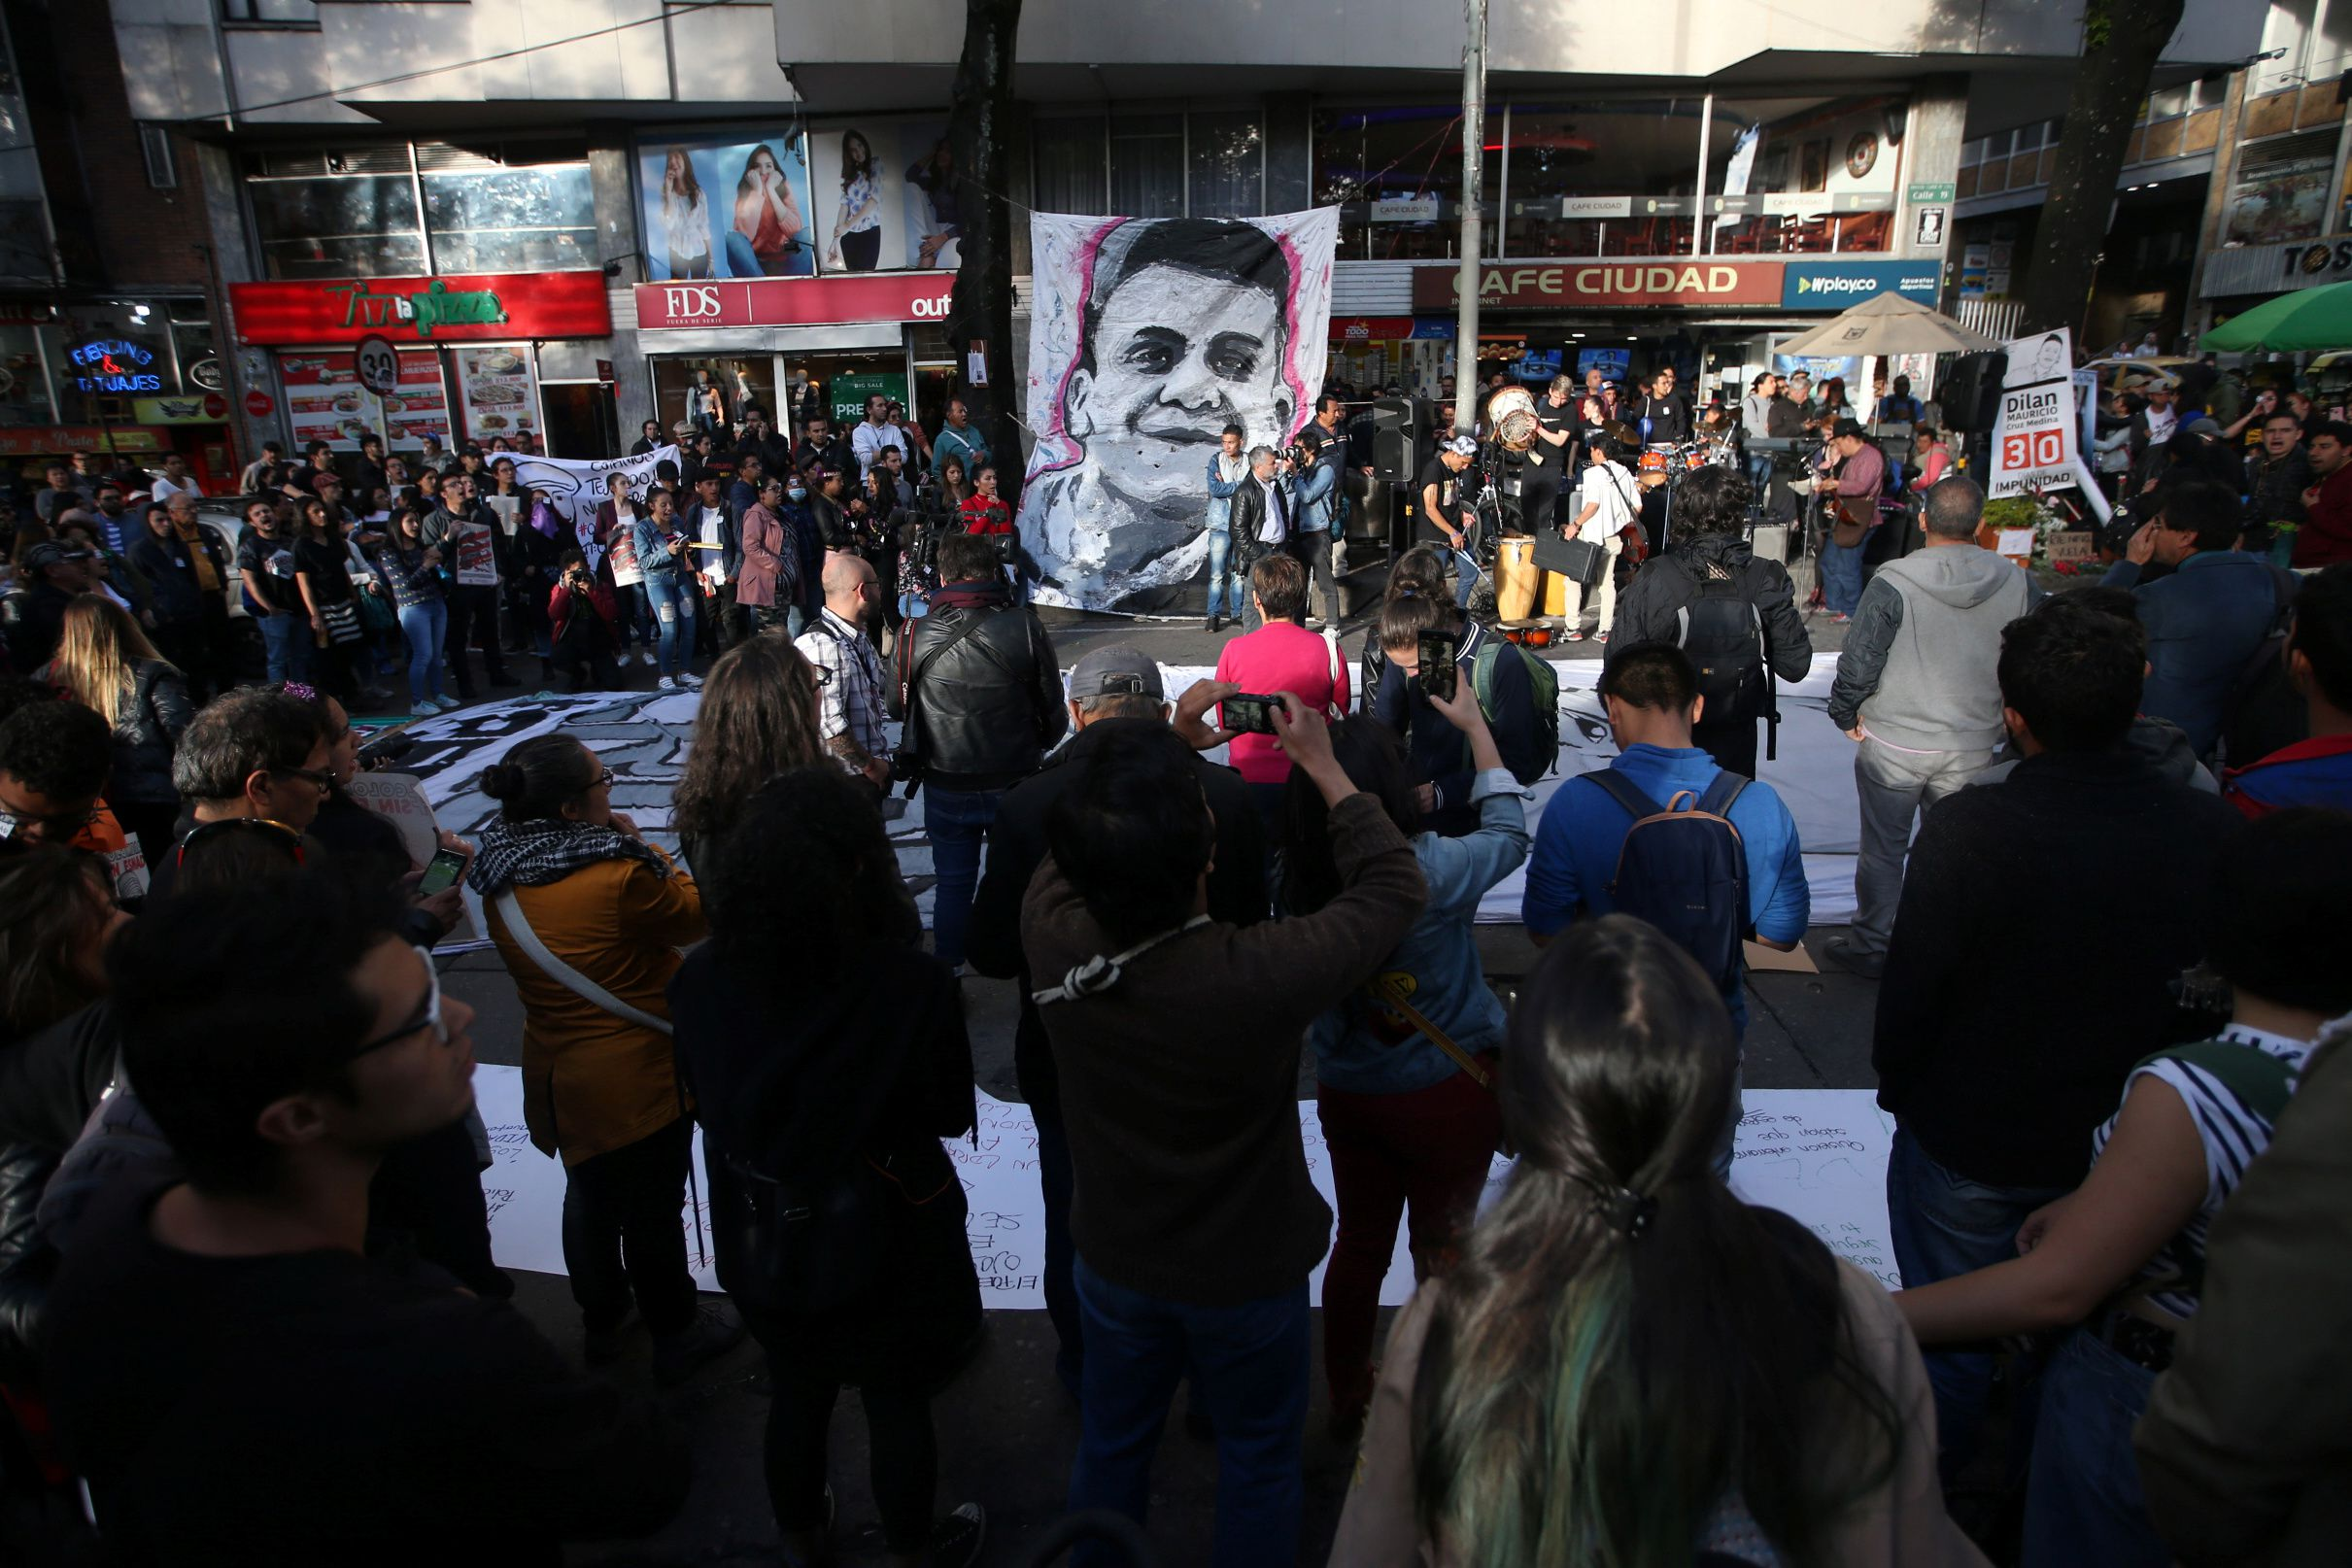 People gather to honour Dilan Cruz, a teenage demonstrator who died after being injured by a tear gas canister during an initial strike in Bogota, Colombia December 23, 2019. REUTERS/Luisa Gonzalez